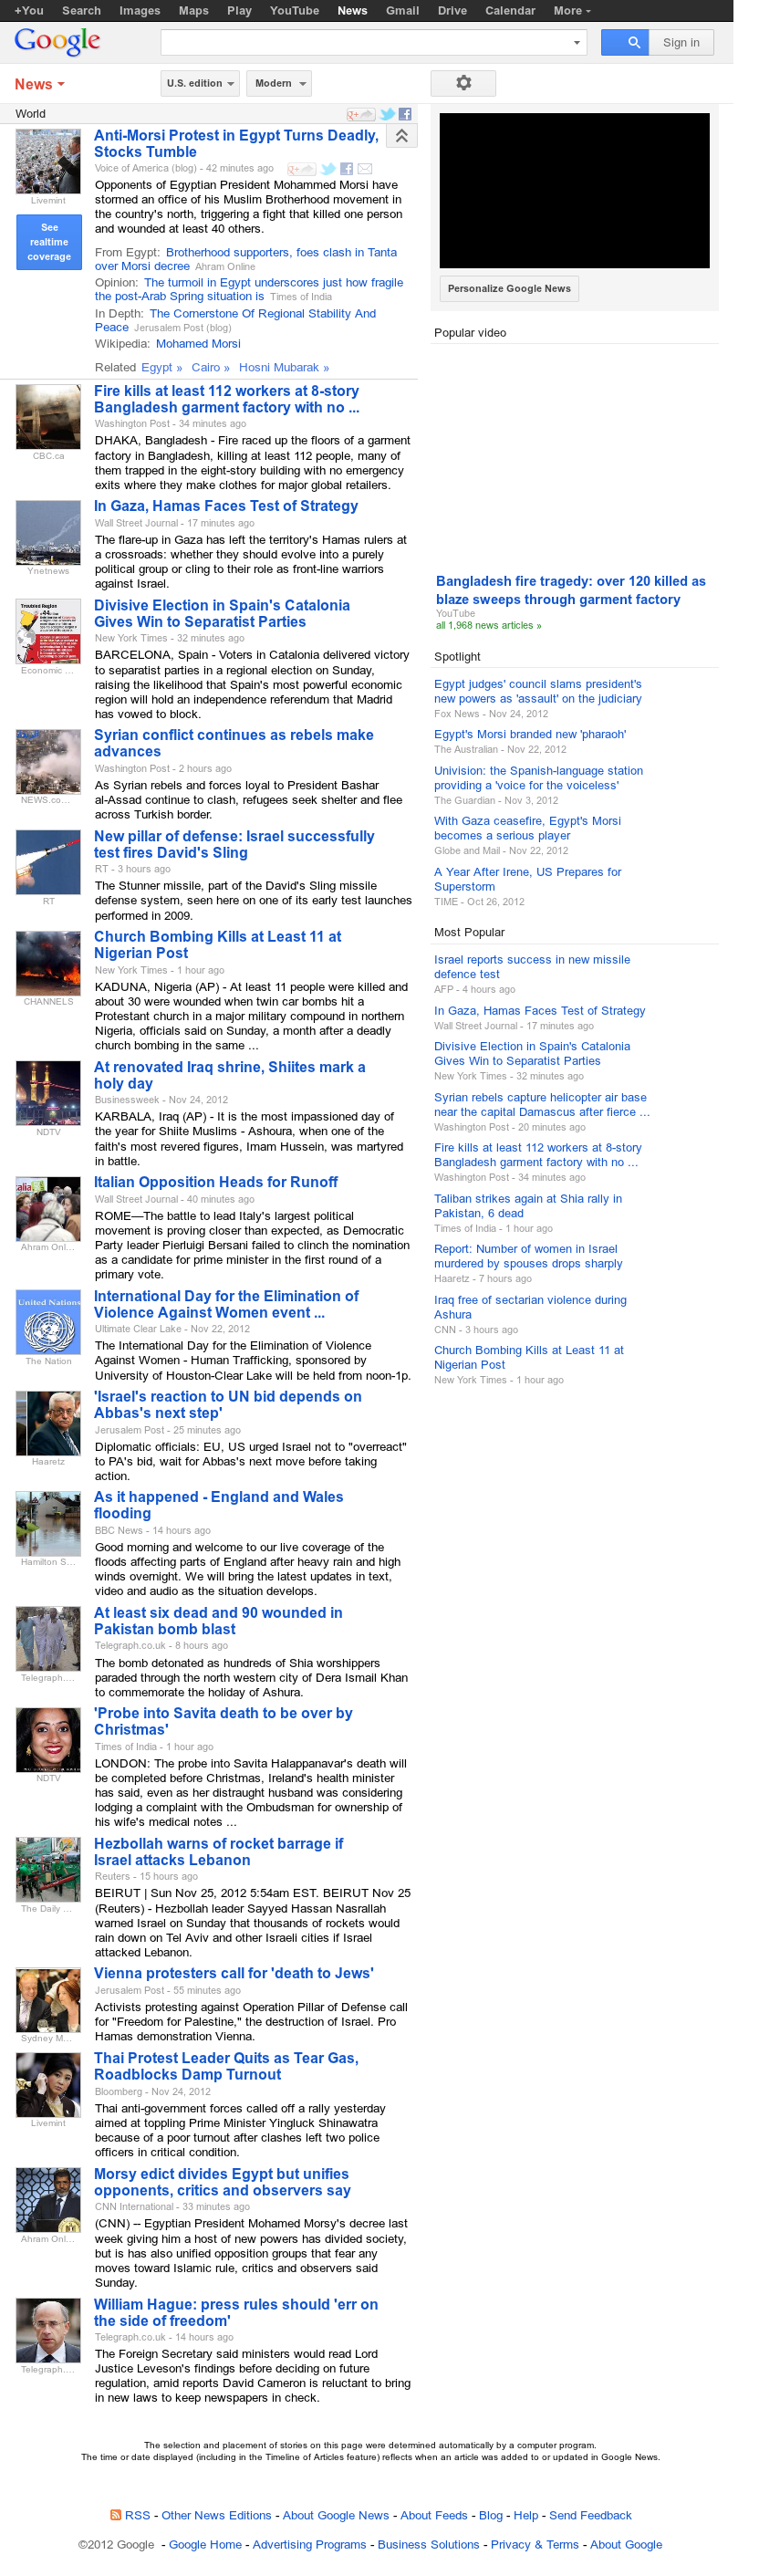 Google News: World at Monday Nov. 26, 2012, 2:11 a.m. UTC